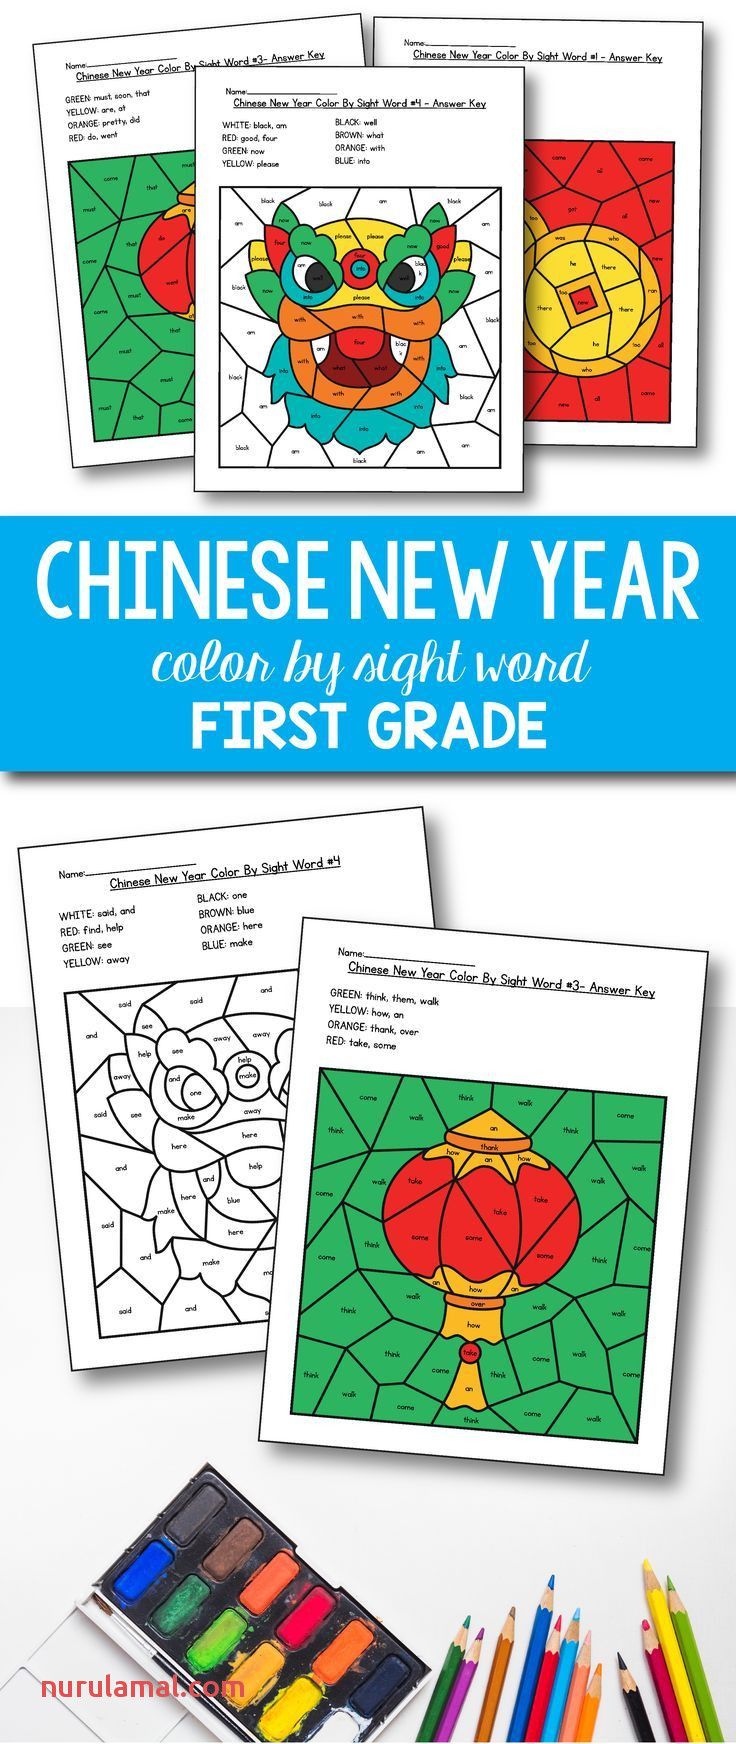 Chinese New Year Activities Chinese New Year Coloring for